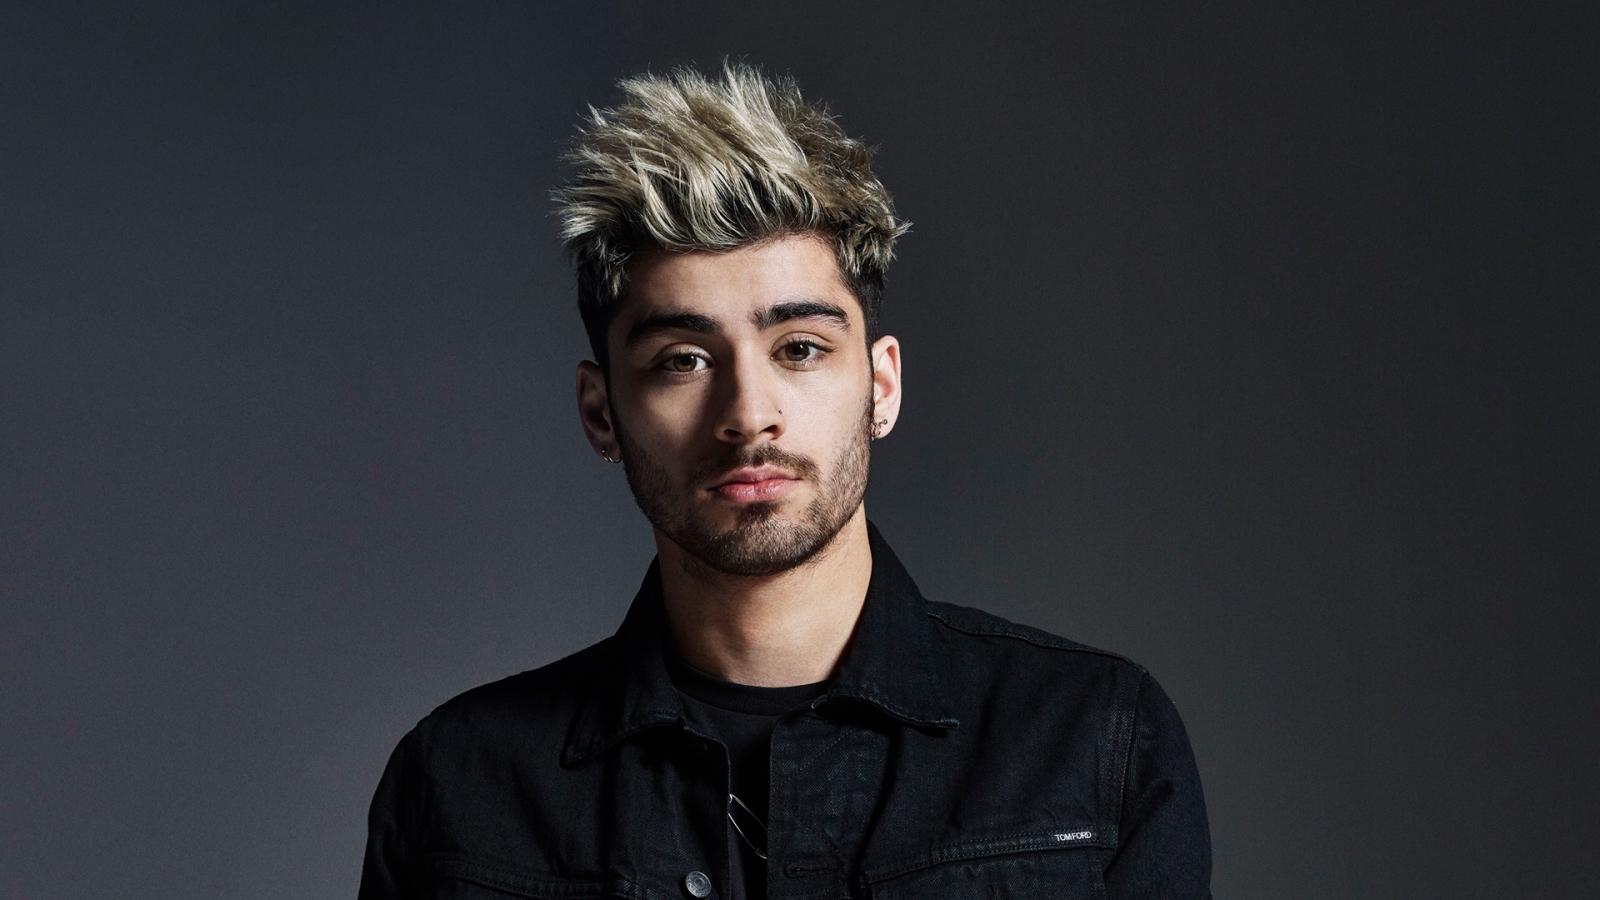 zayn malik hd images : get free top quality zayn malik hd images for